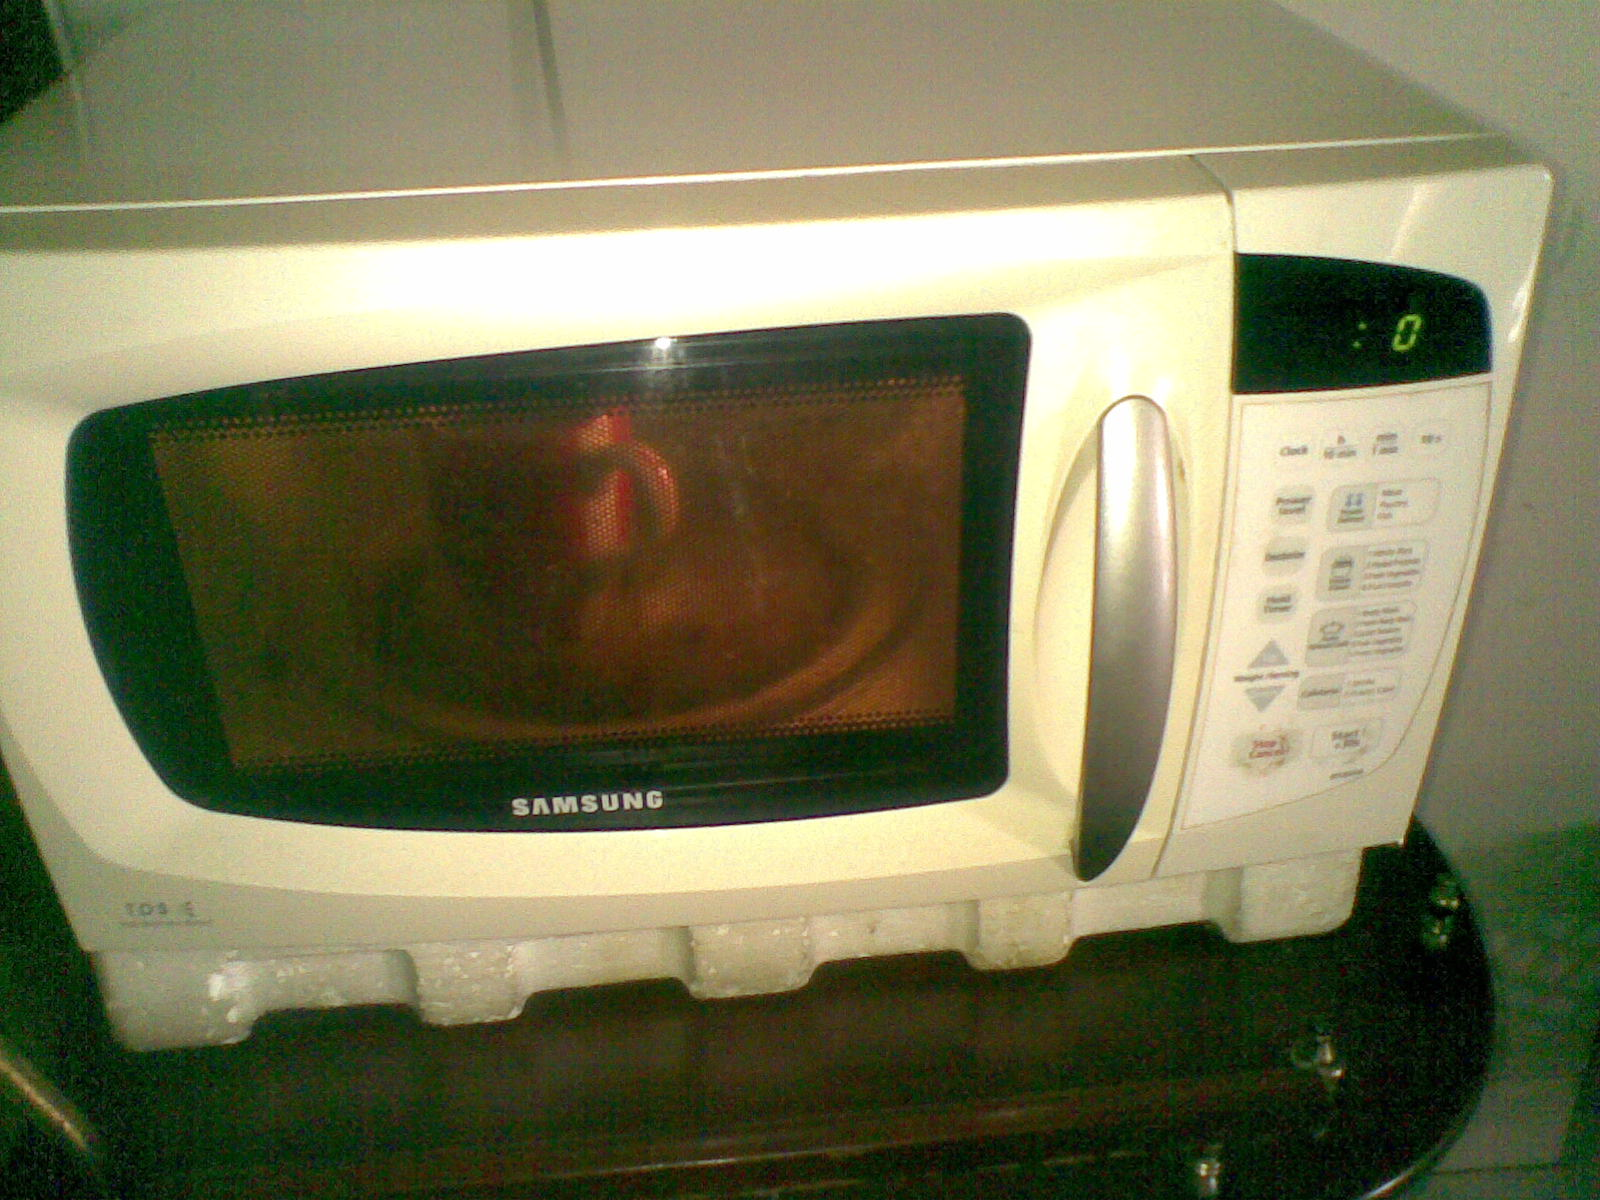 Samsung Microwave Oven | ClickBD large image 0